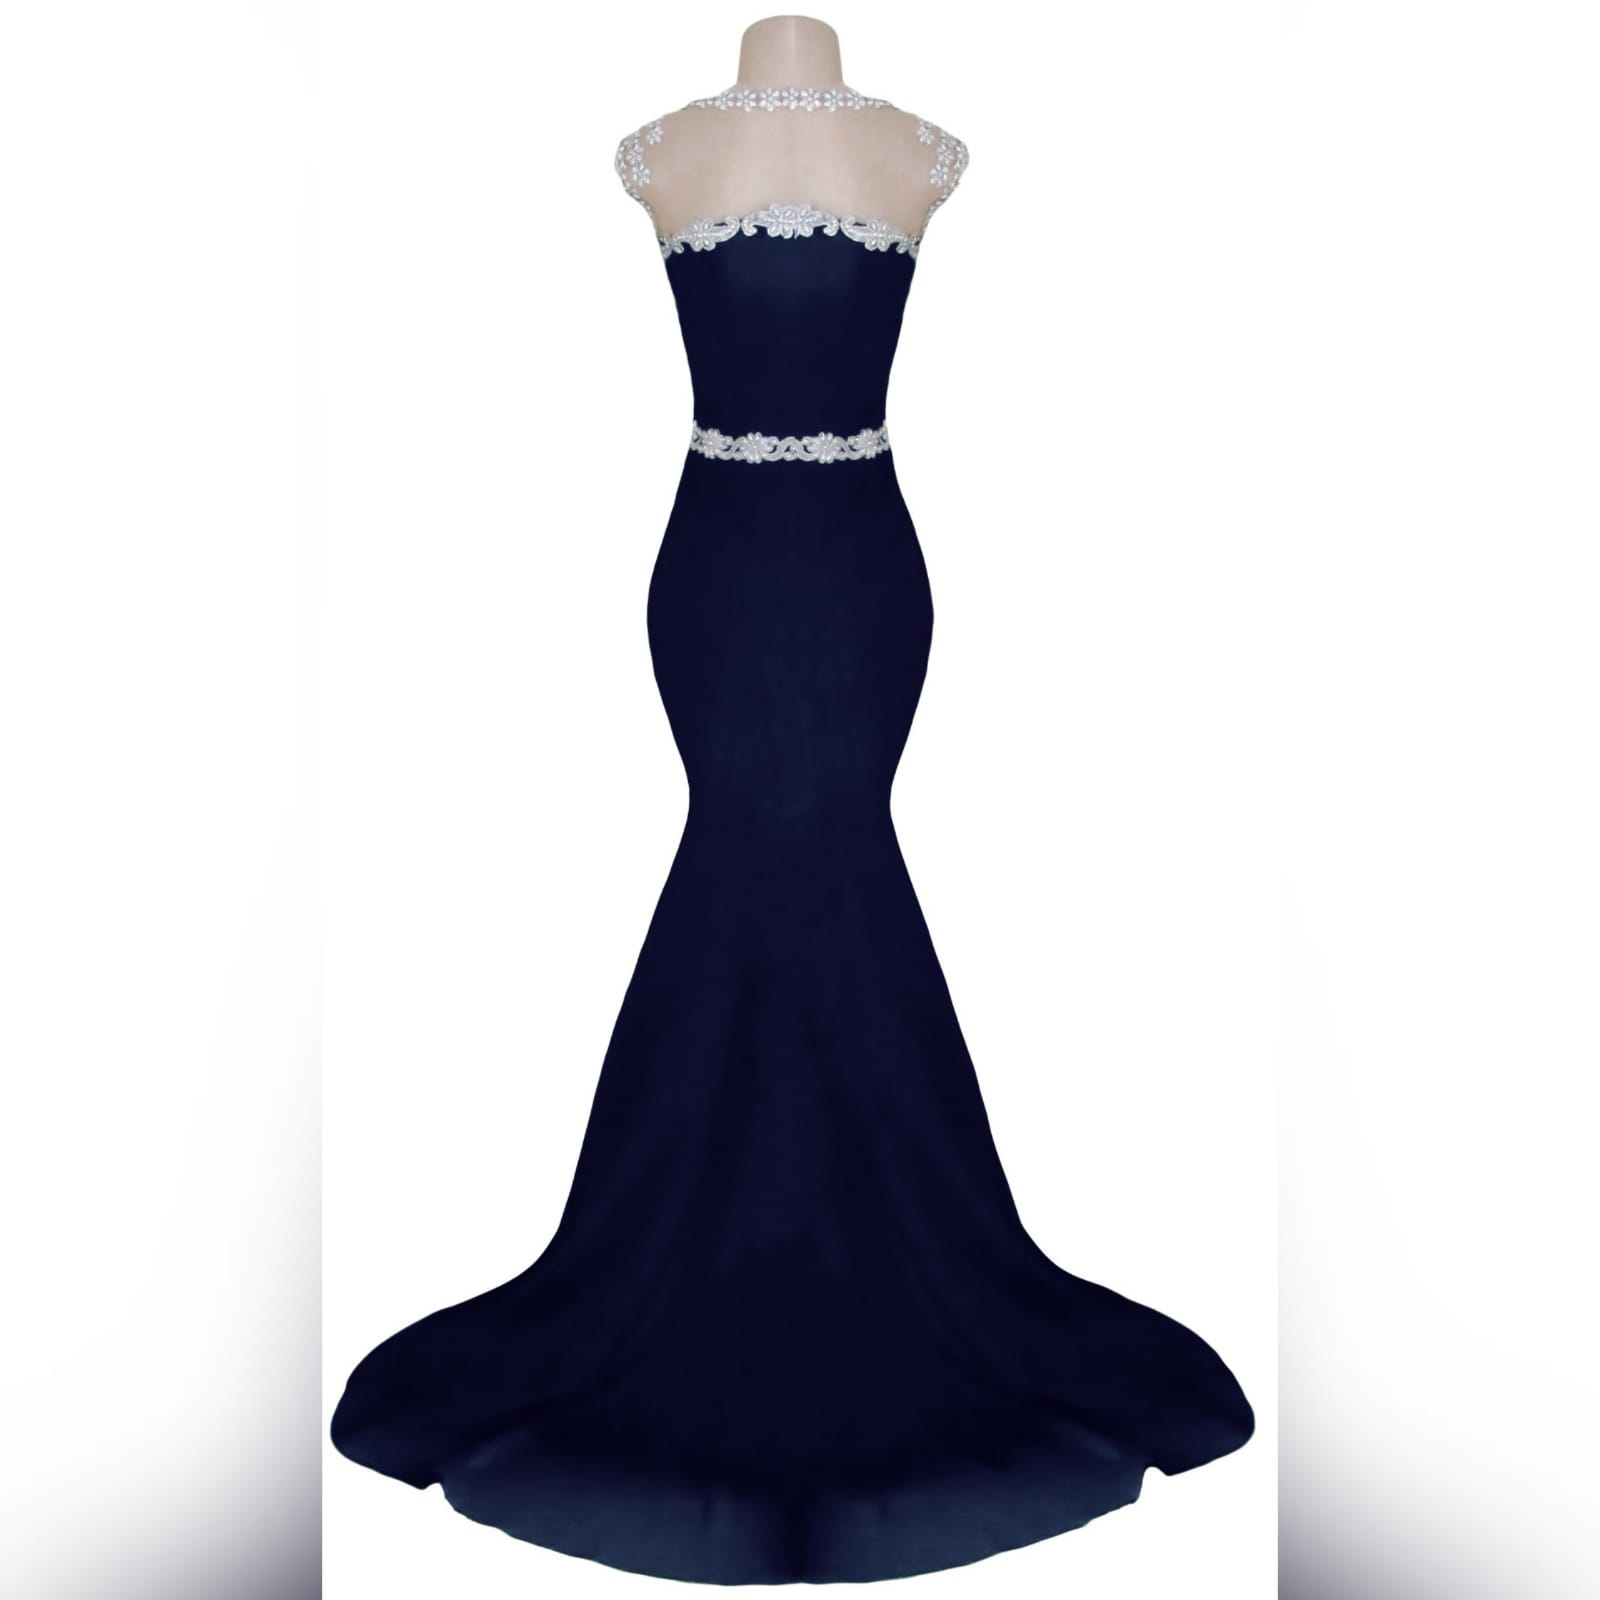 Navy blue & silver soft mermaid formal dress 4 navy blue & silver soft mermaid formal dress. Bodice detailed in silver bling. With a waist belt effect. An illusion neckline and a train.